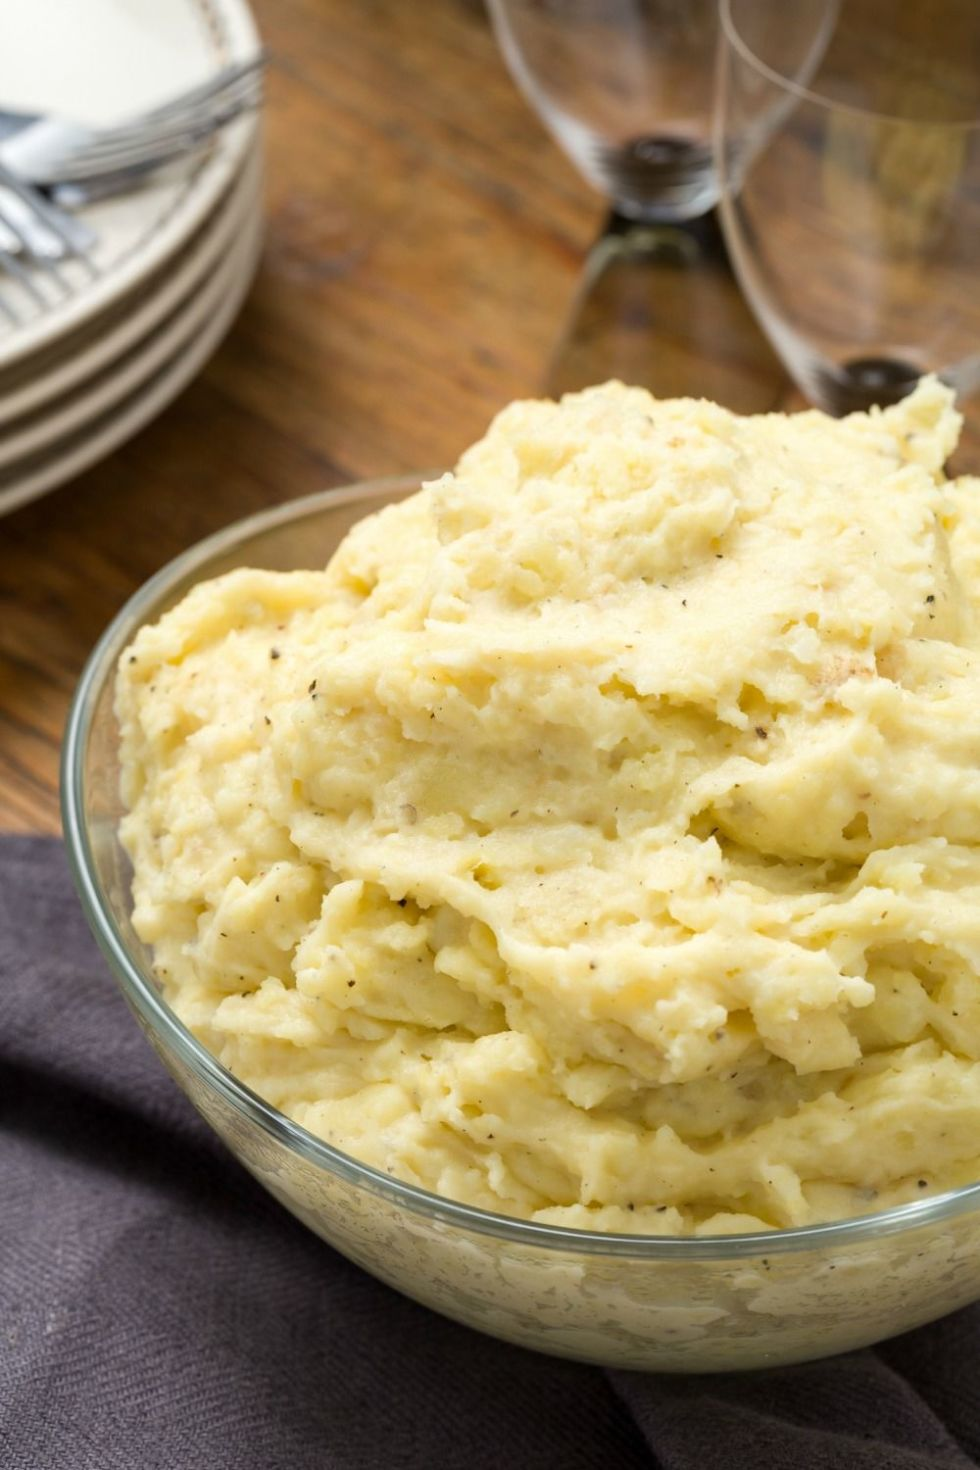 Mashed potatoes and eggs recipes